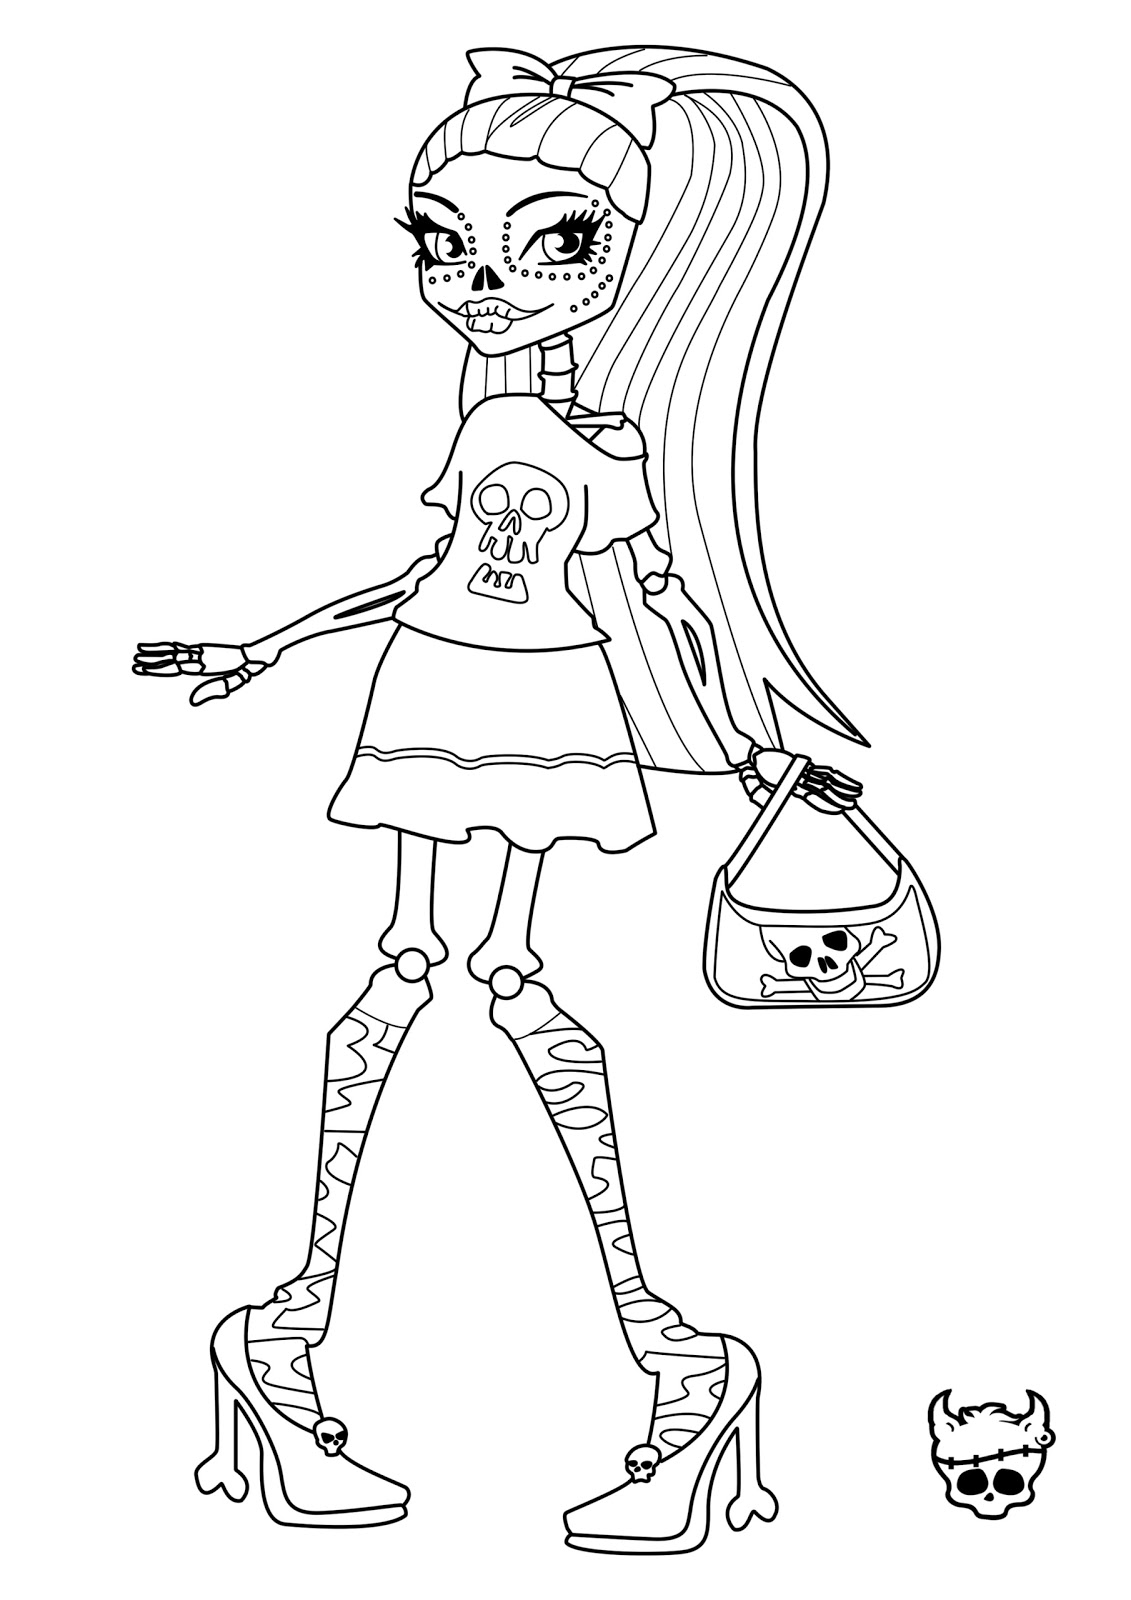 monster high coloring pages print free printable coloring pages for girls monster pages high coloring print